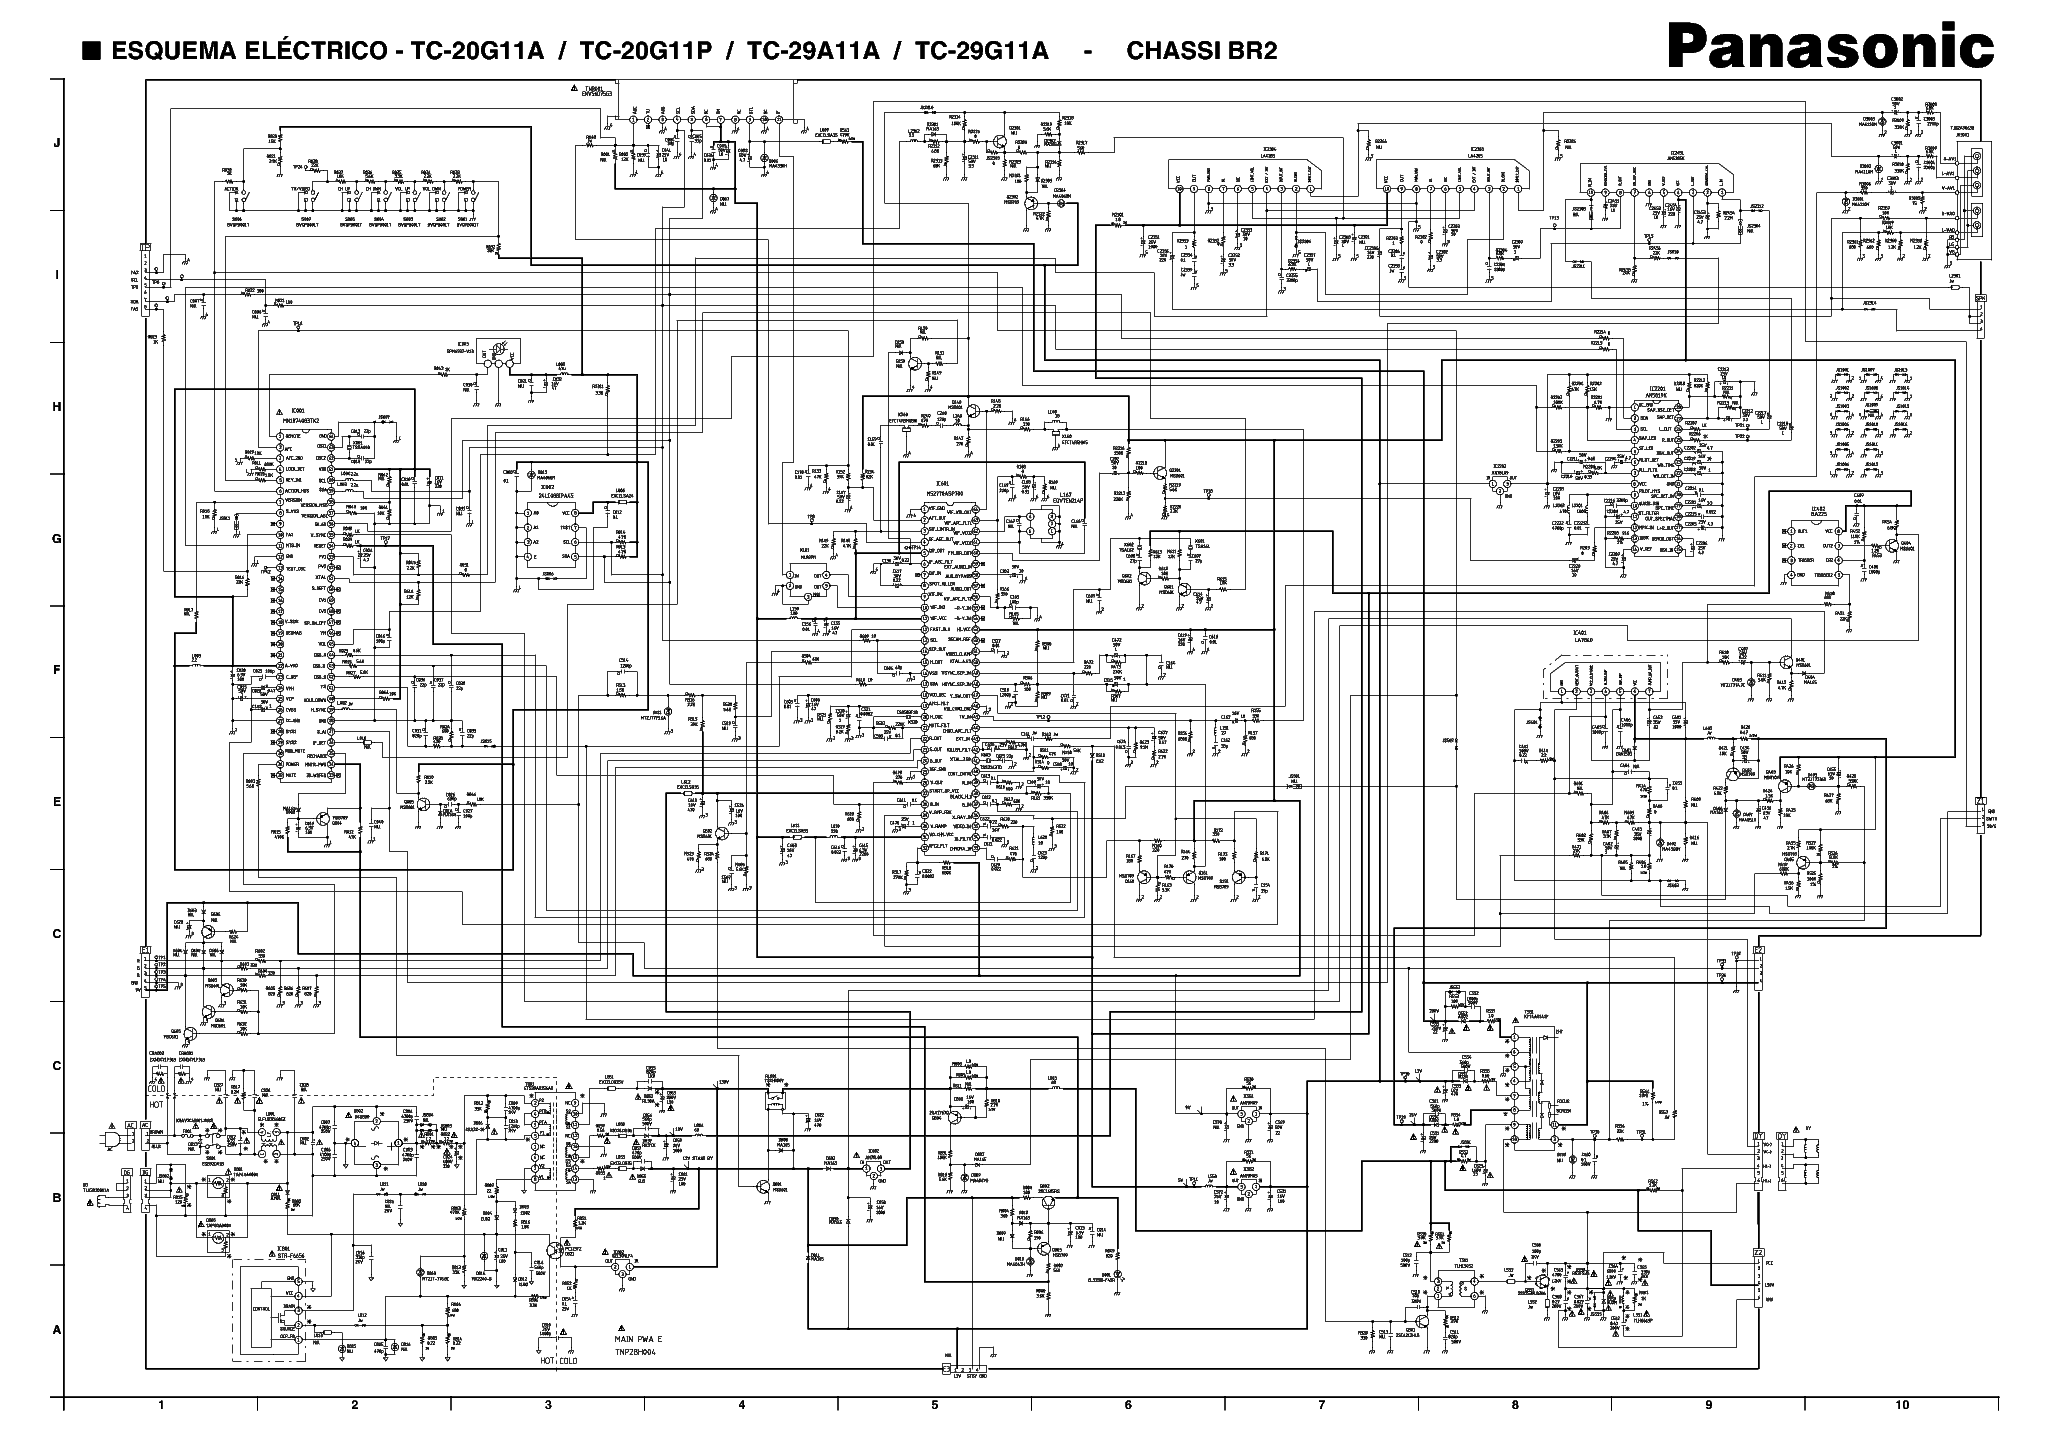 Panasonic Tv Wiring Diagrams Online Manuual Of Diagram Car Stereo 1999 Camry Img Rh 2 Andreas Bolz De Radio